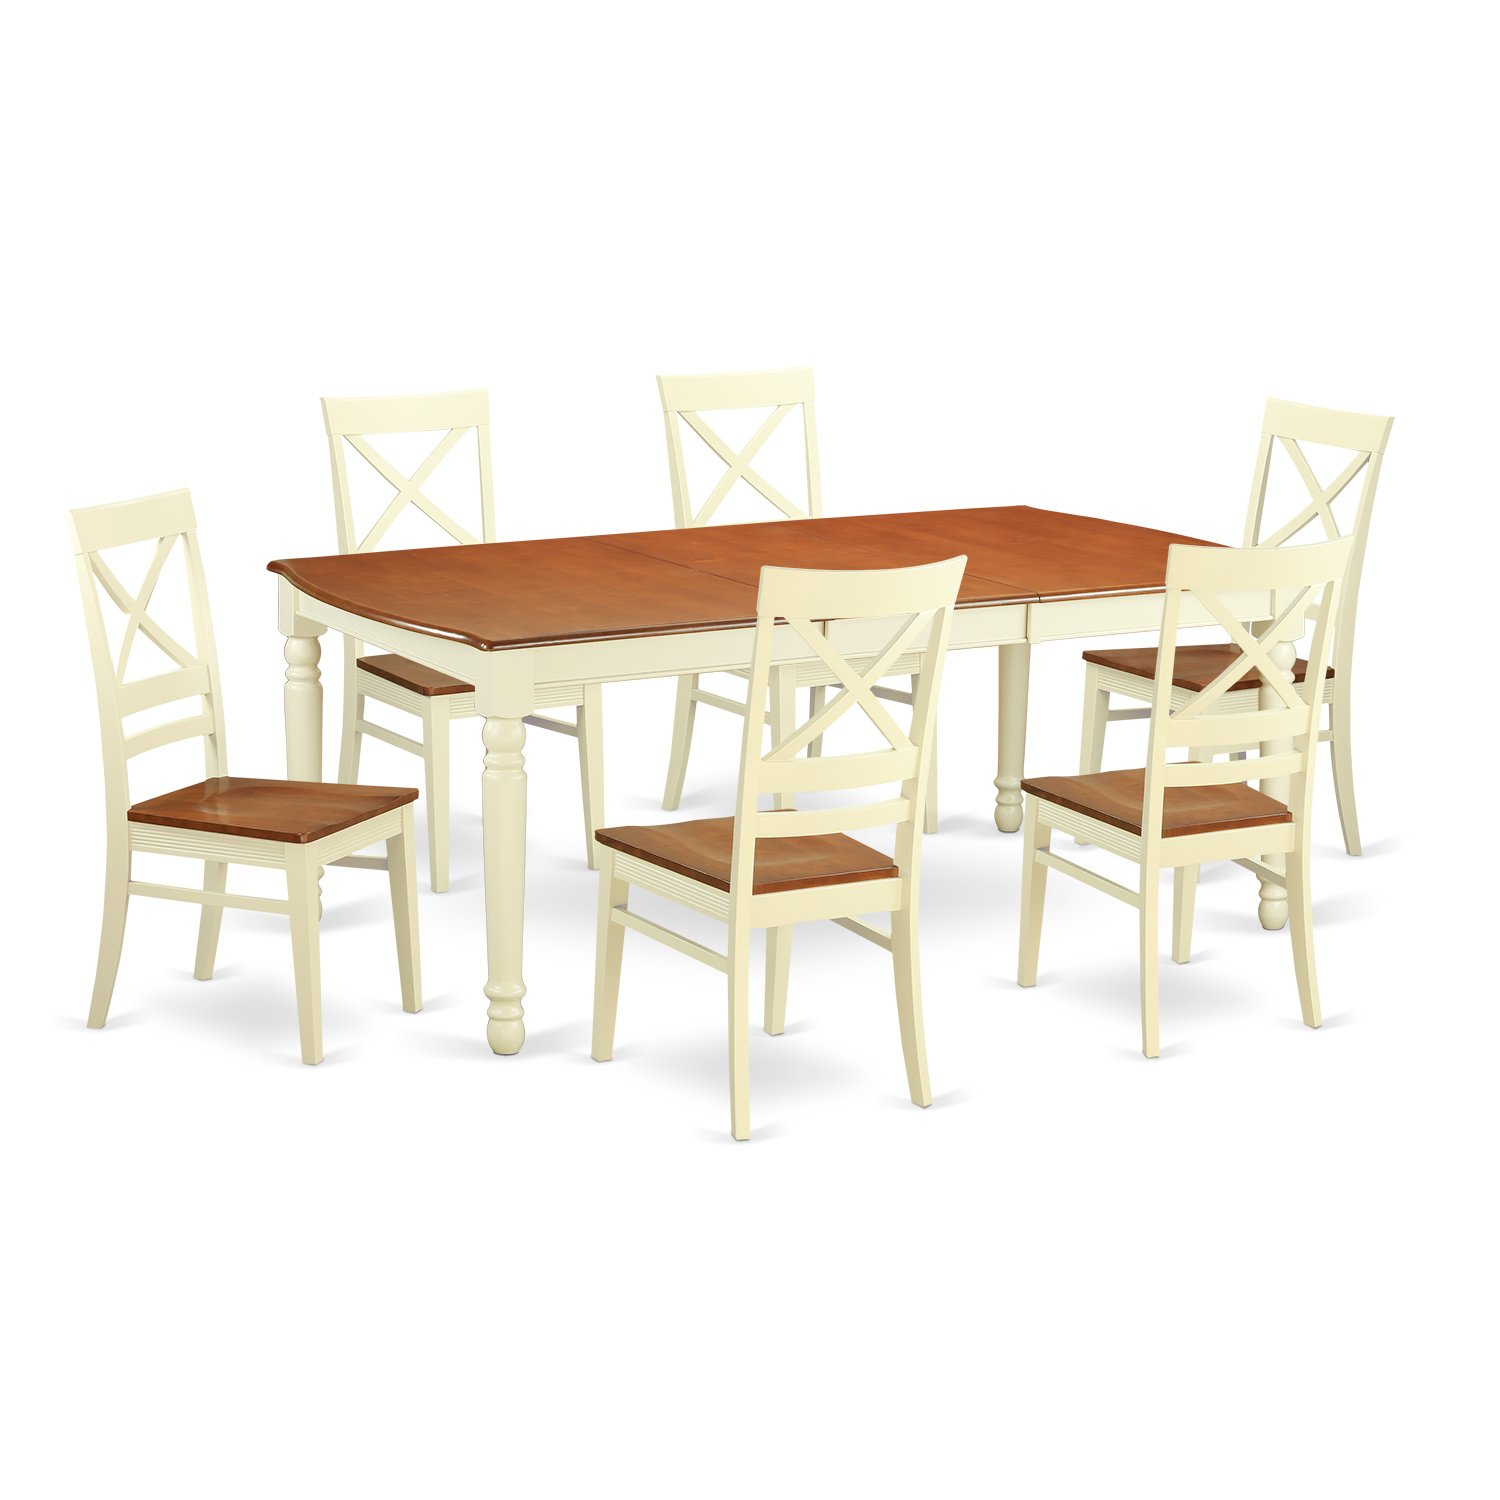 DOQU7-WHI-W 7 PC Table set -Kitchen dinette Table and 6 Dining Chairs